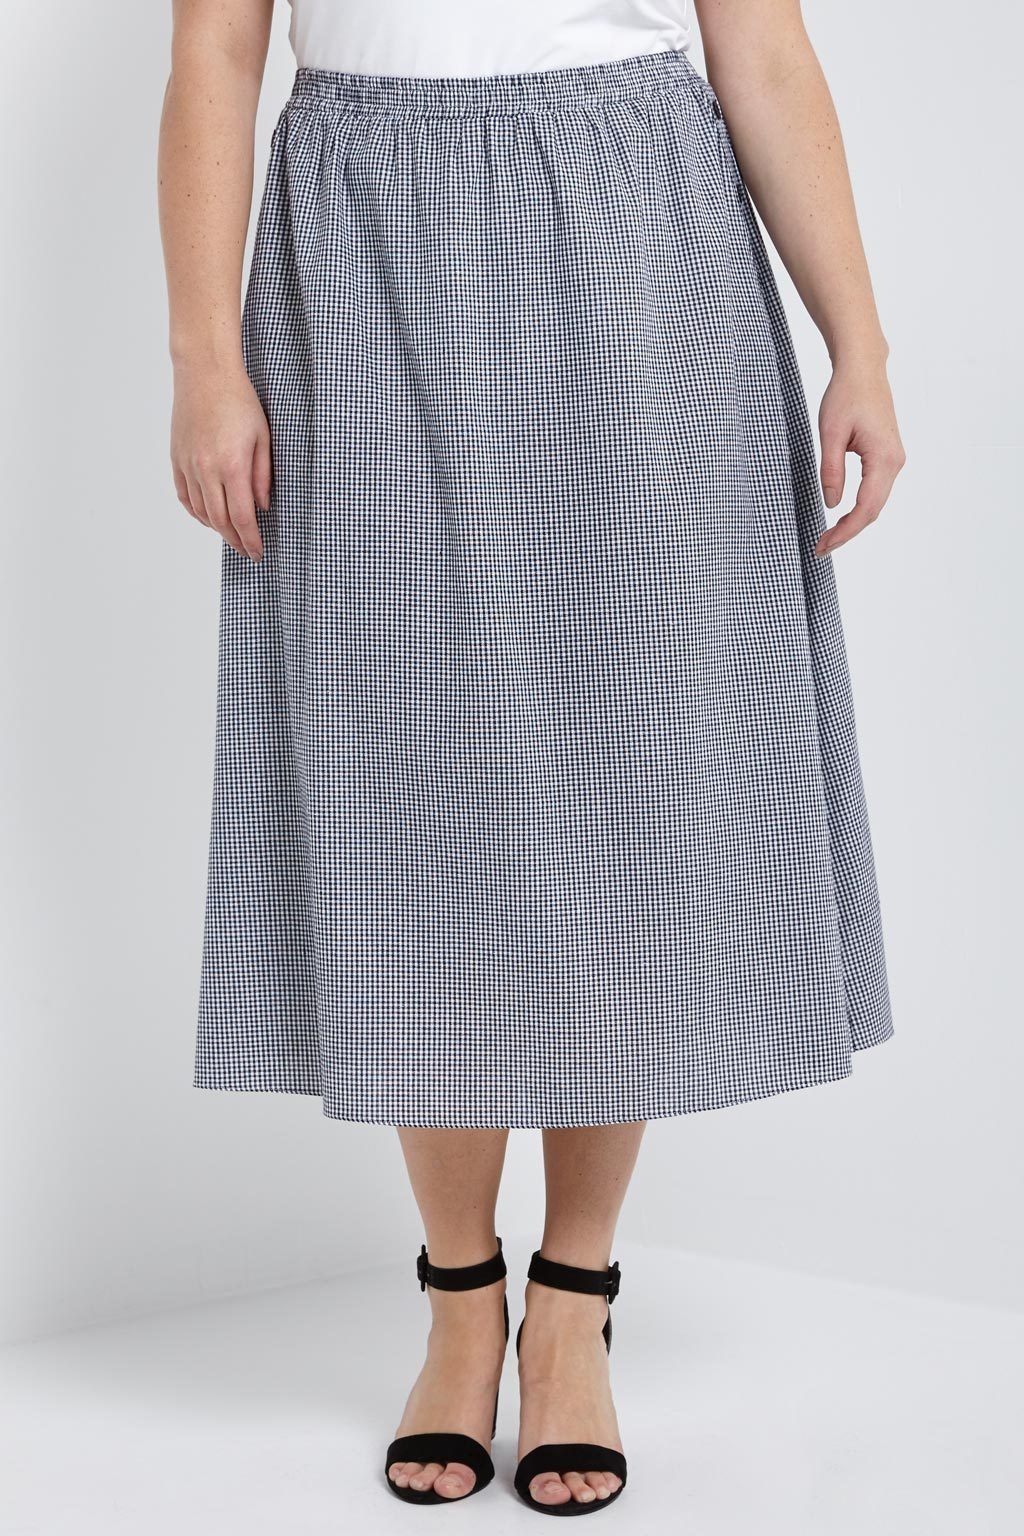 Poshsquare Plus Gingham Side Button Midi Skirt Plus Size